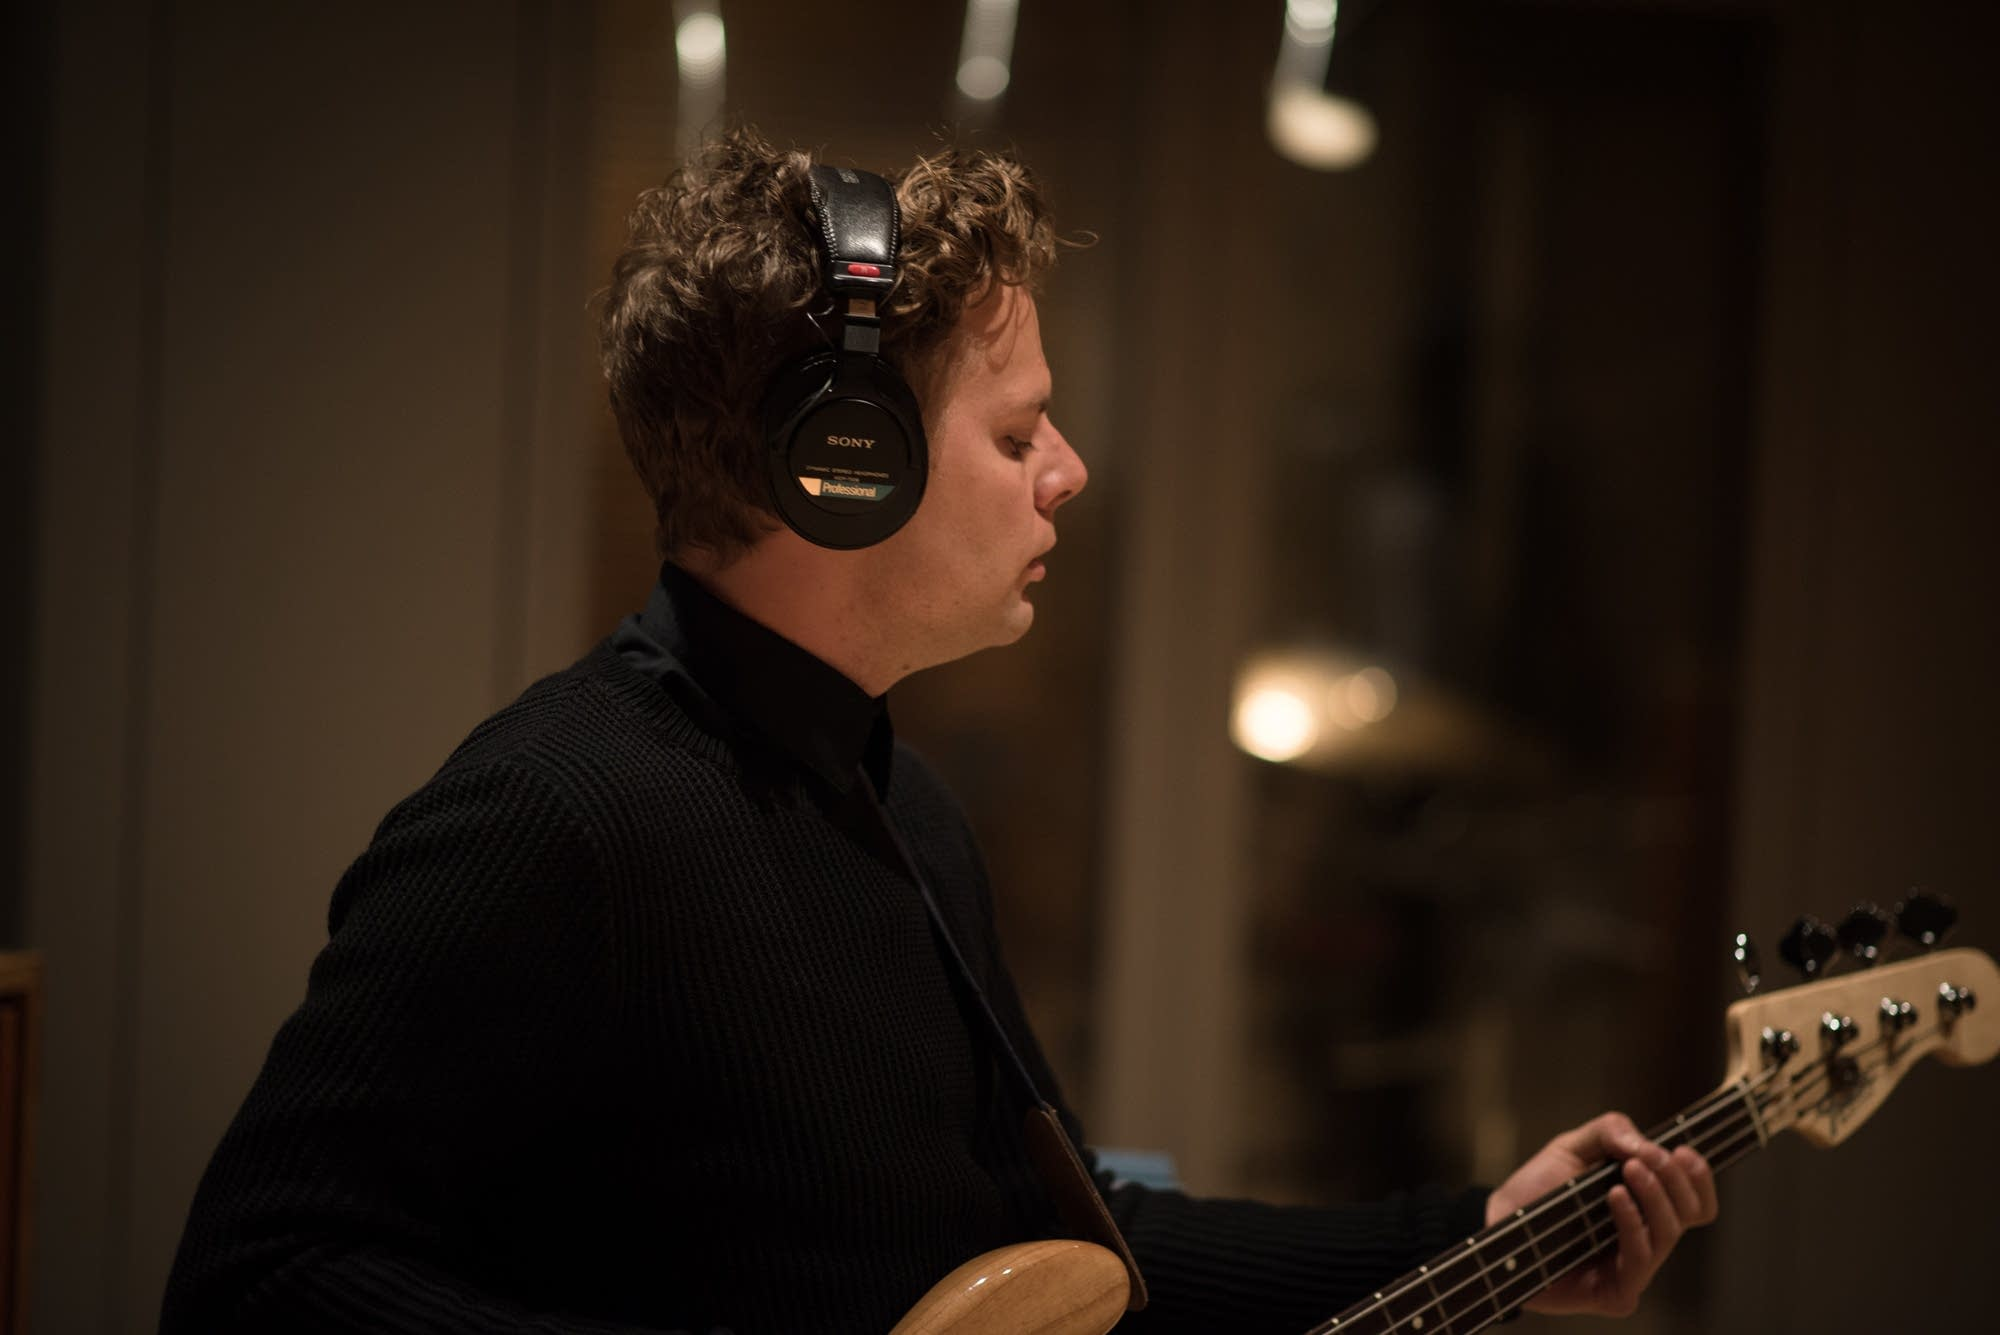 Thomas on bass with Meg Mac in the studio.